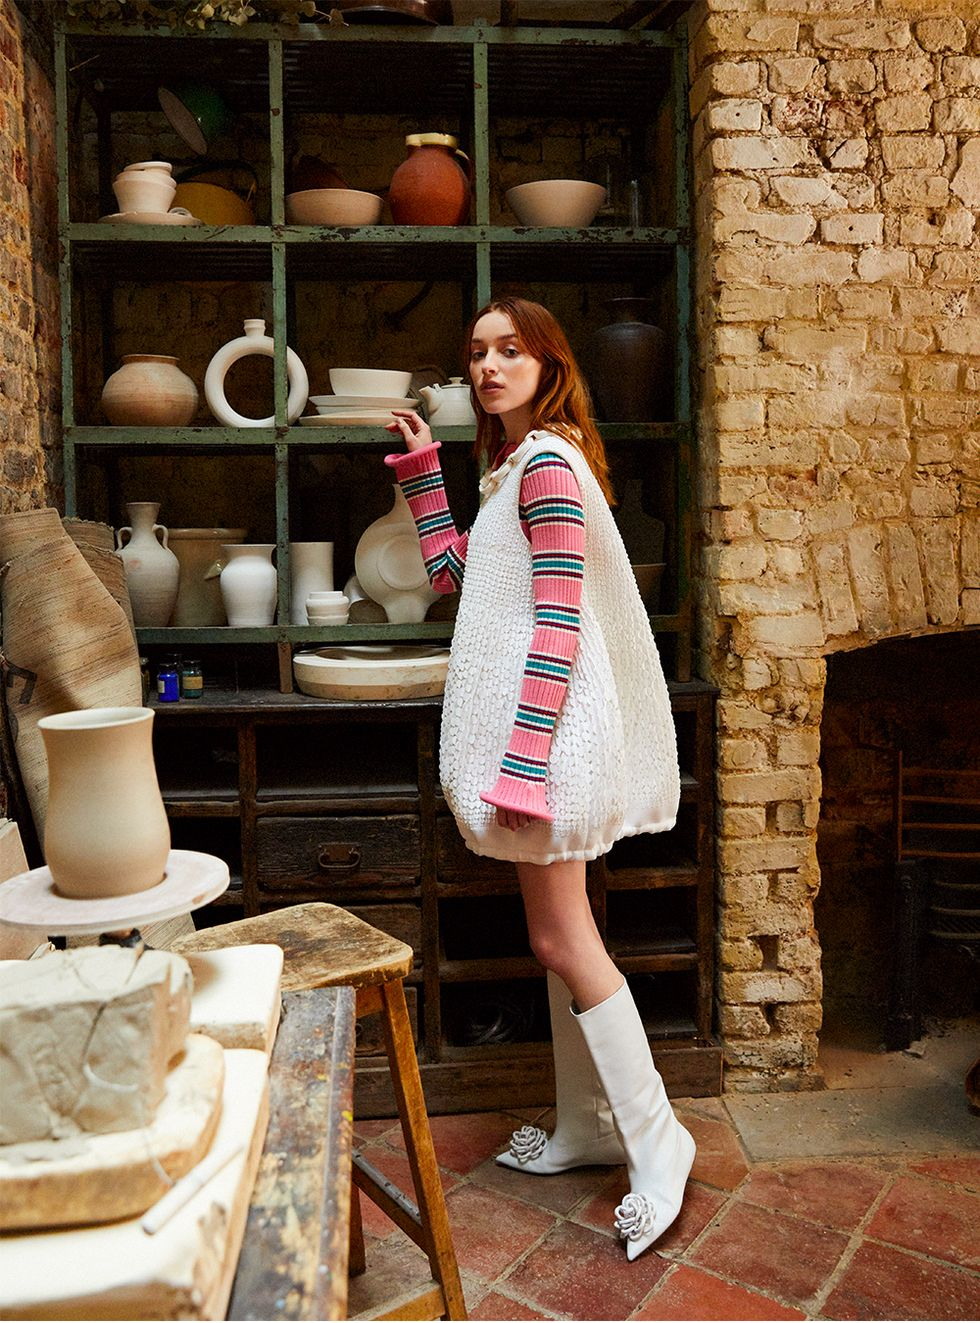 Embroidered wool dress, knitted cardigan, leather boots, all Louis Vuitton